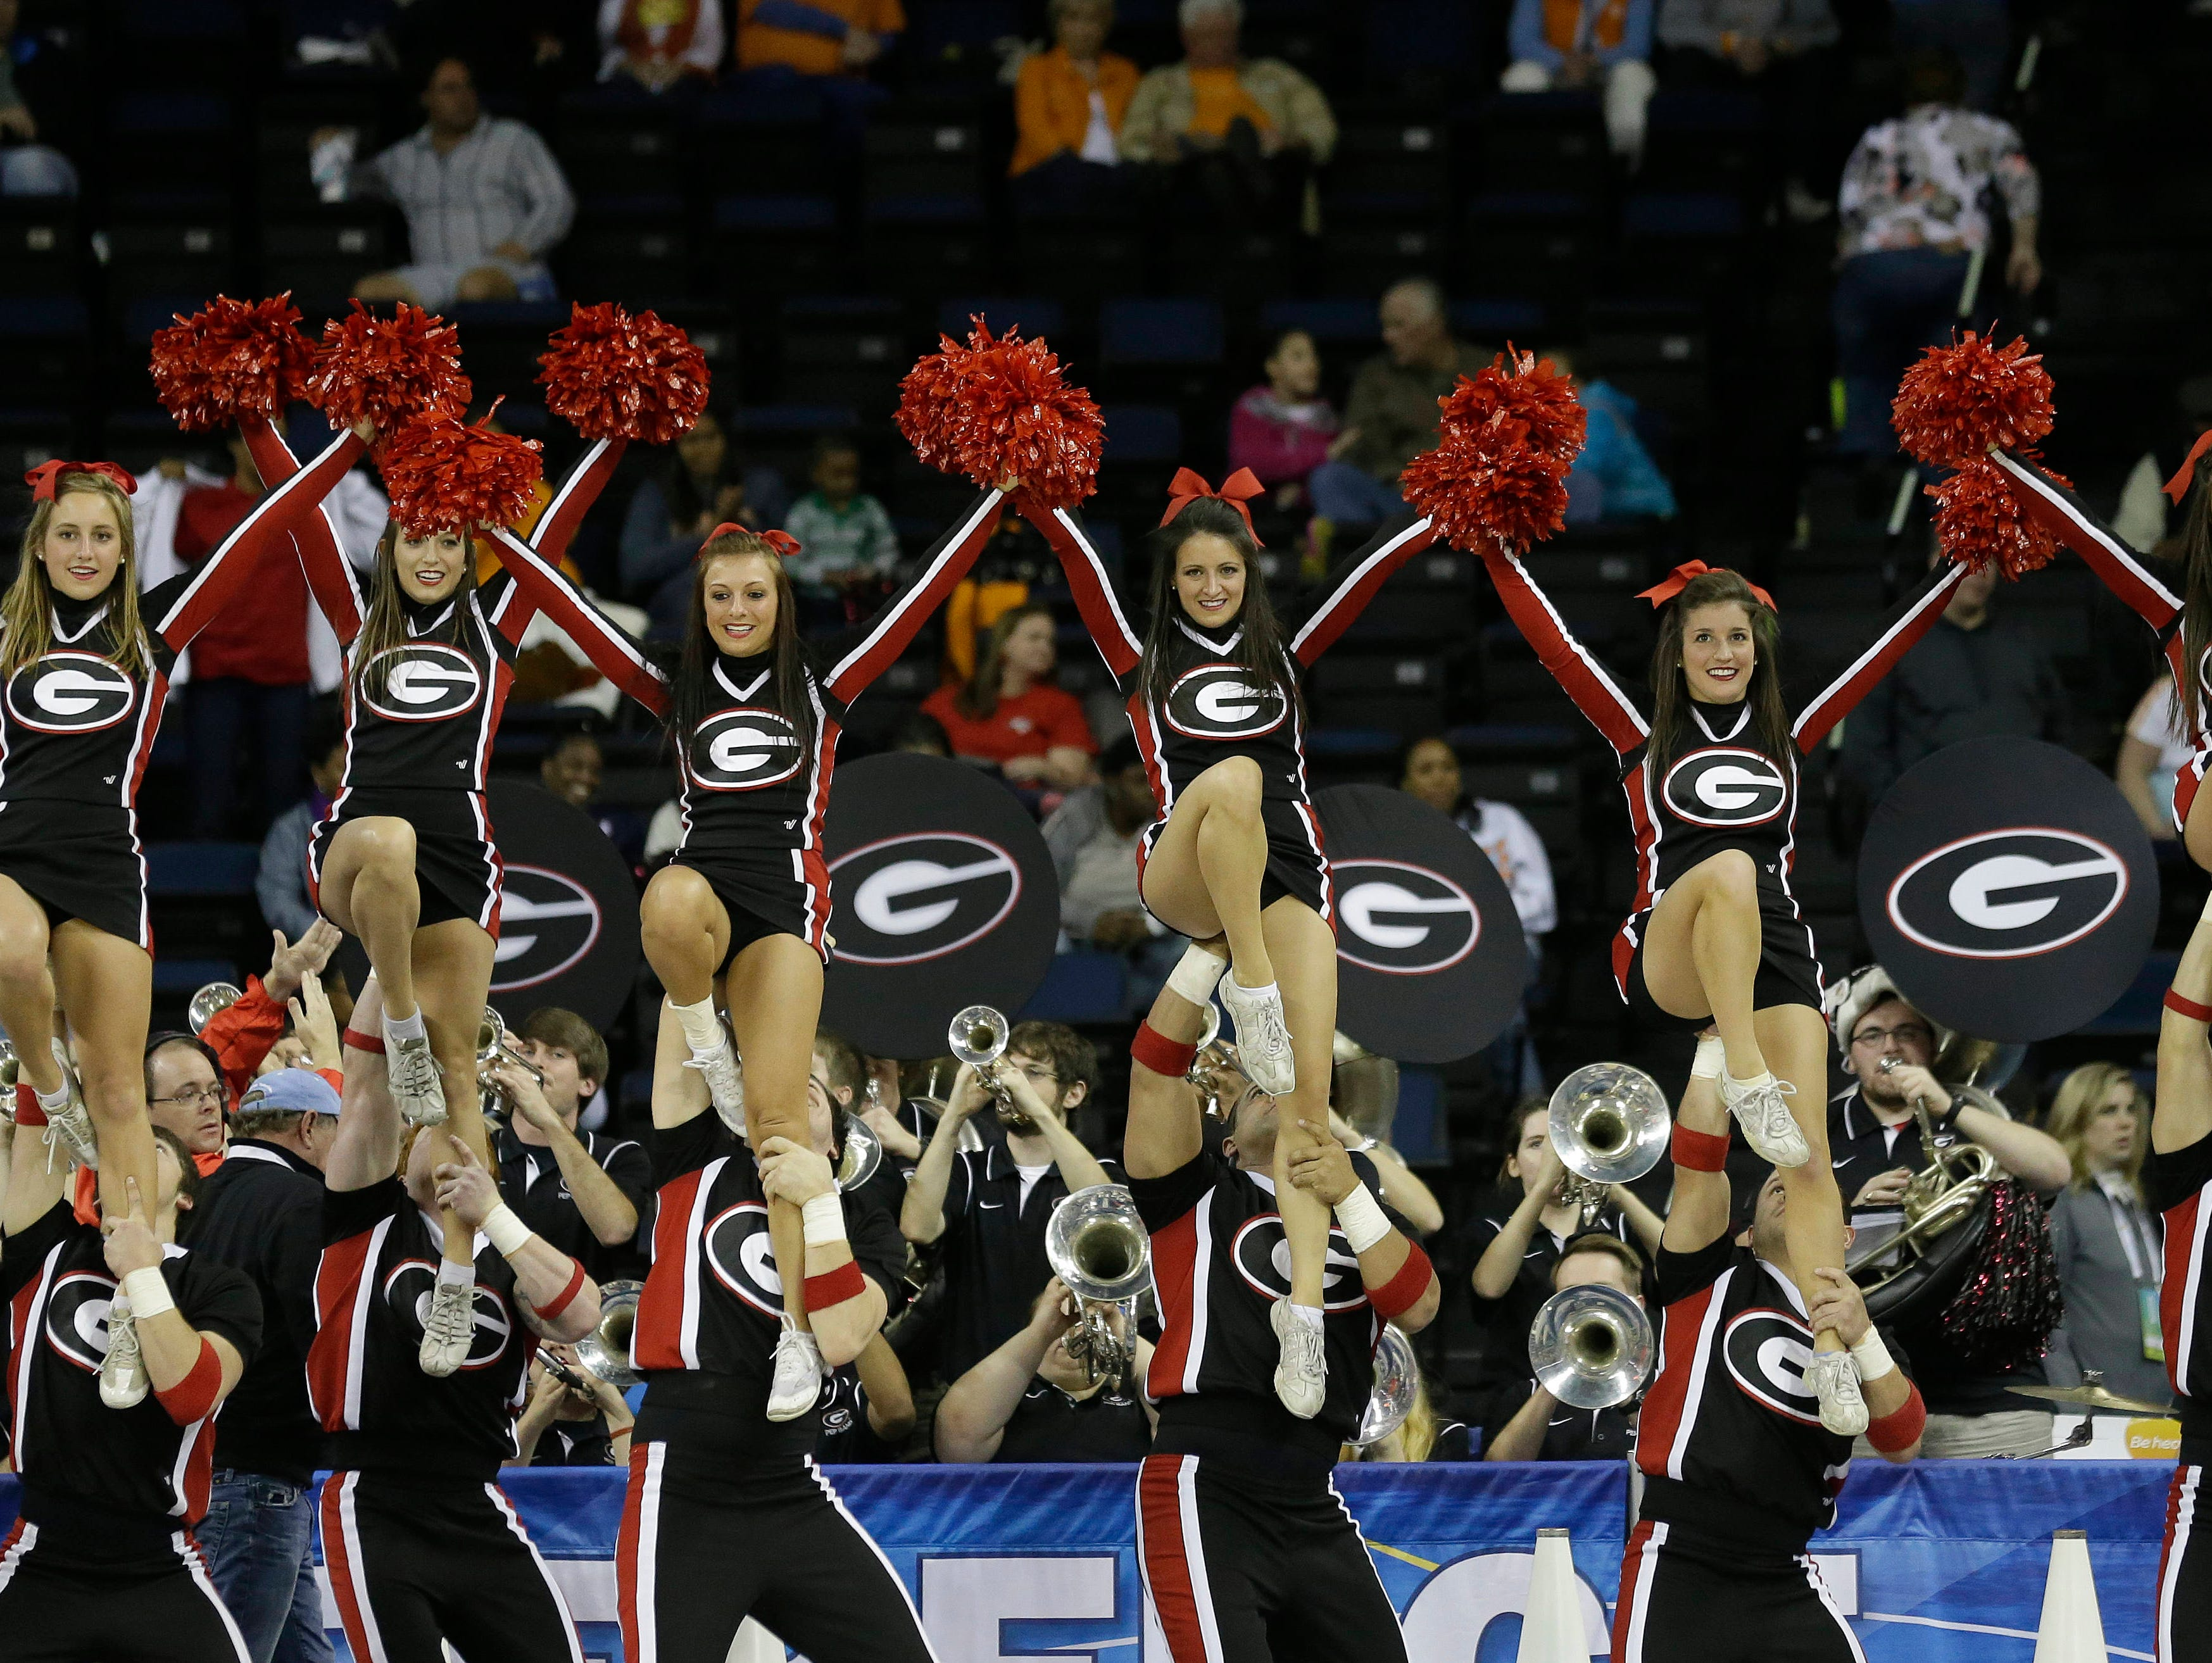 Georgia Bulldogs cheerleader perform during the first half of their NCAA college basketball game against Kentucky in the Southeastern Conference tournament, Saturday, March 9, 2013, in Duluth, Ga. Texas A&M  won 66-62. (AP Photo/John Bazemore)